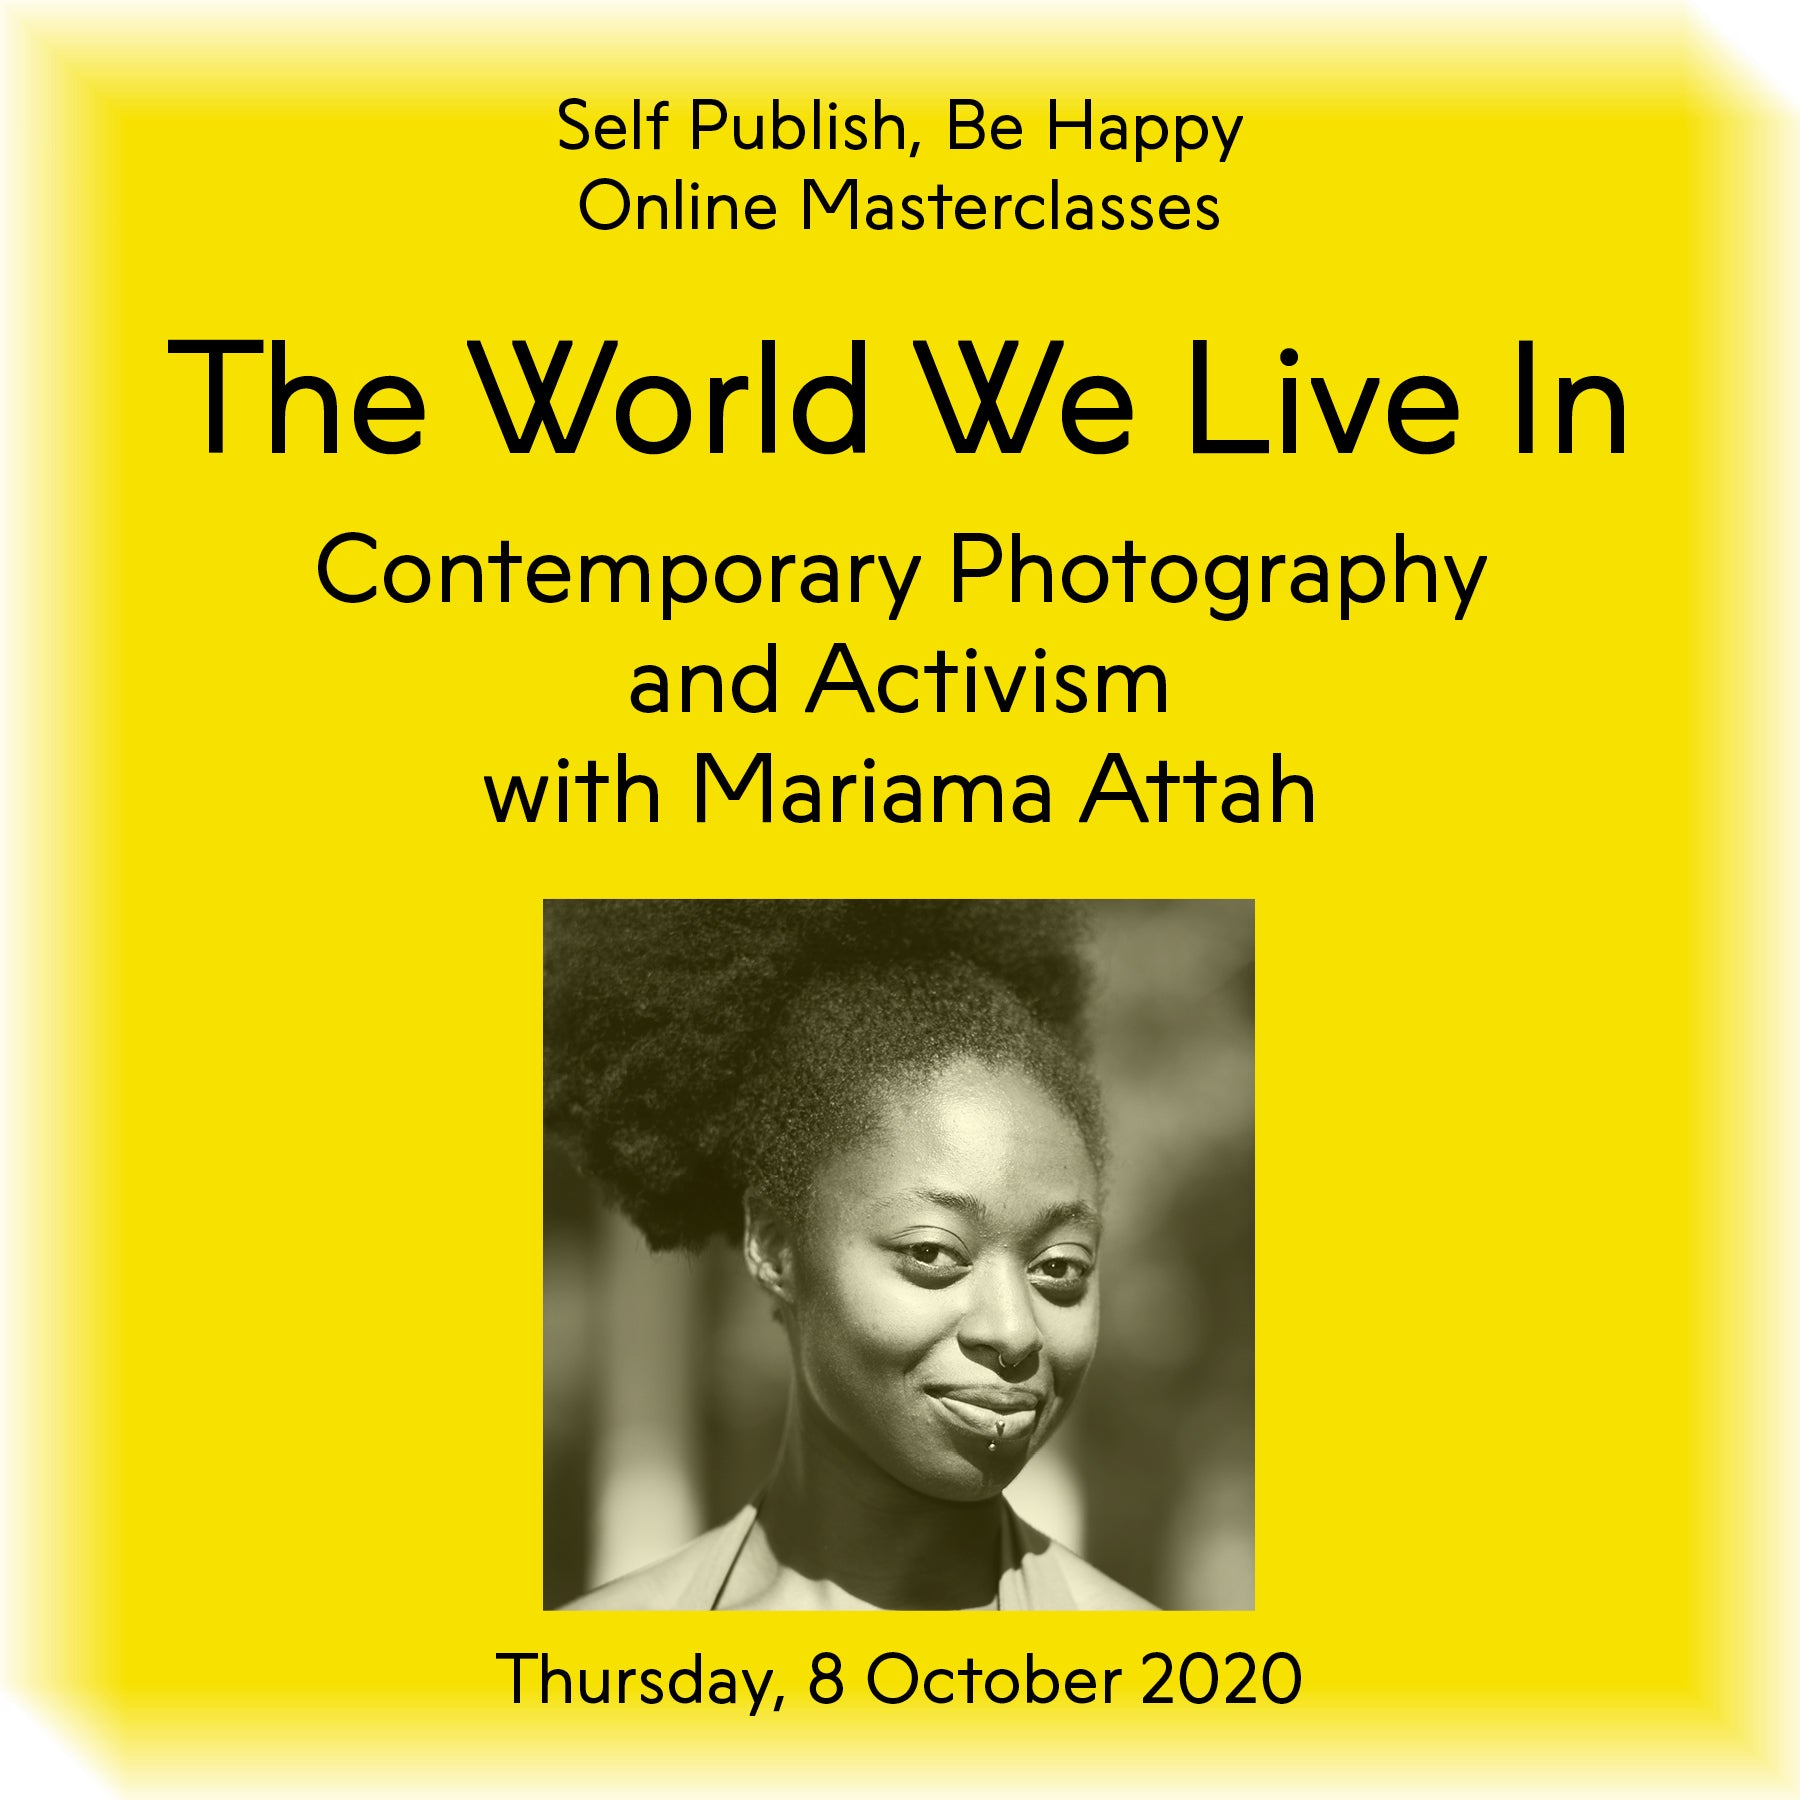 The World We Live In: Contemporary Photography and Activism with Mariama Attah